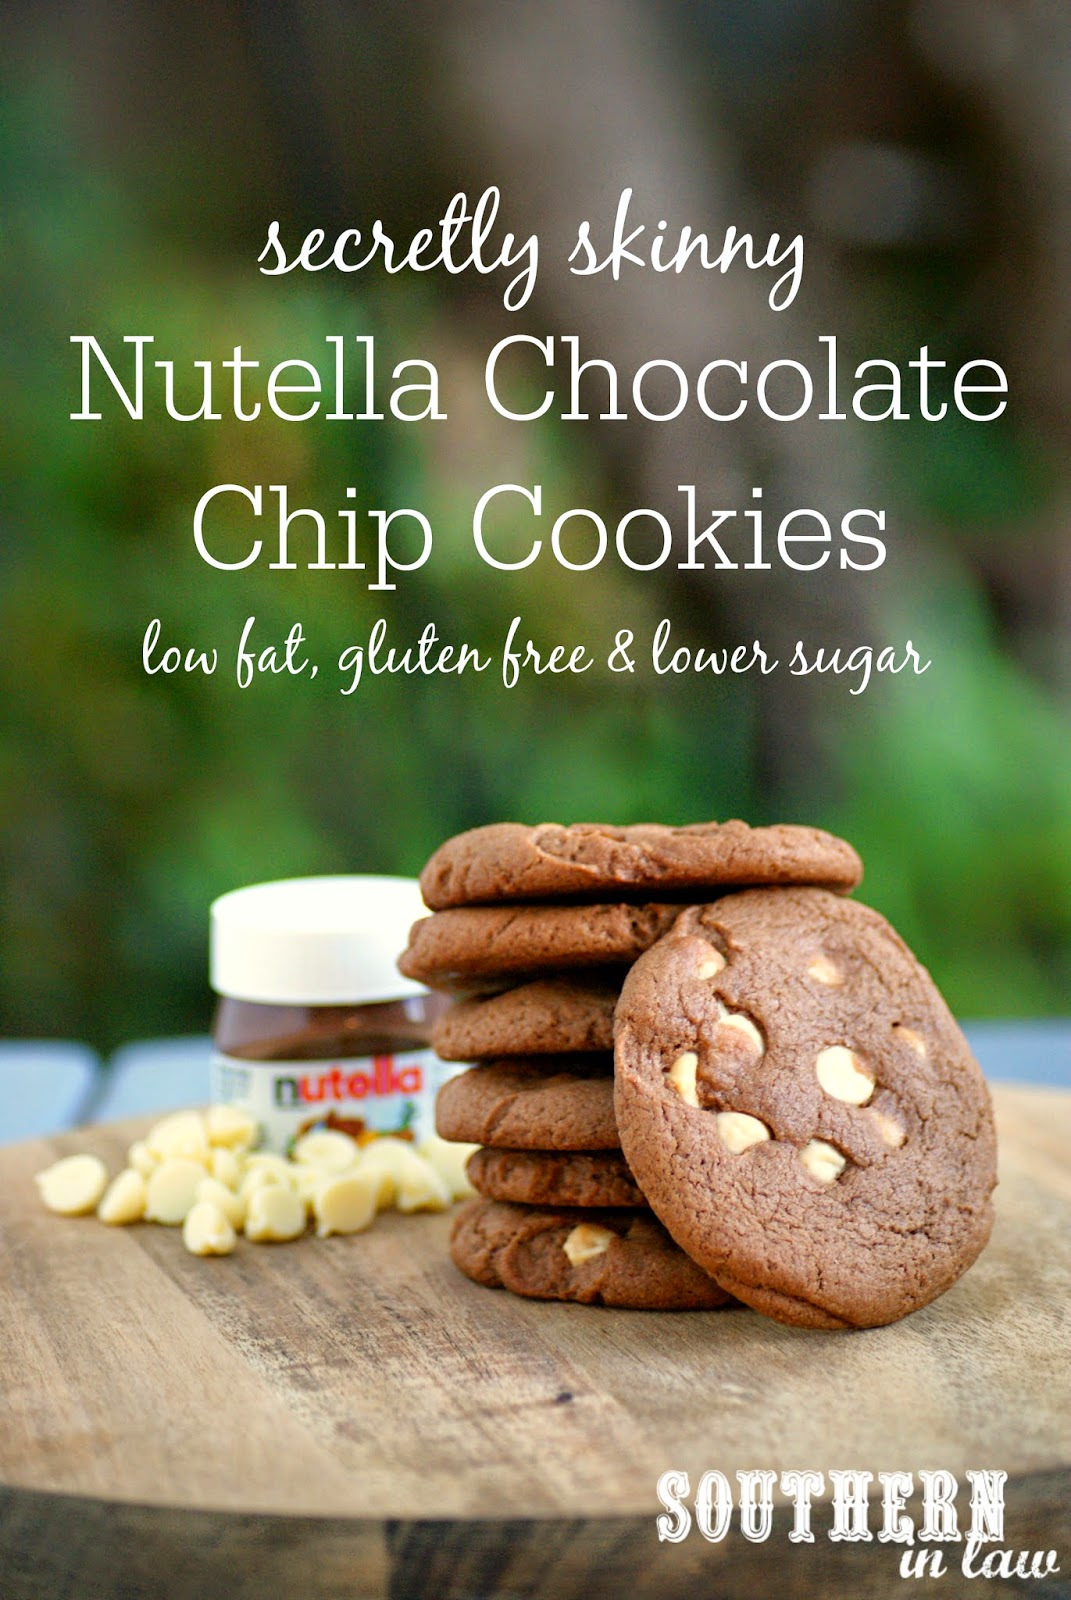 Secretly Skinny Low Fat Nutella Chocolate Chip Cookie Recipe - low fat, gluten free, lower sugar